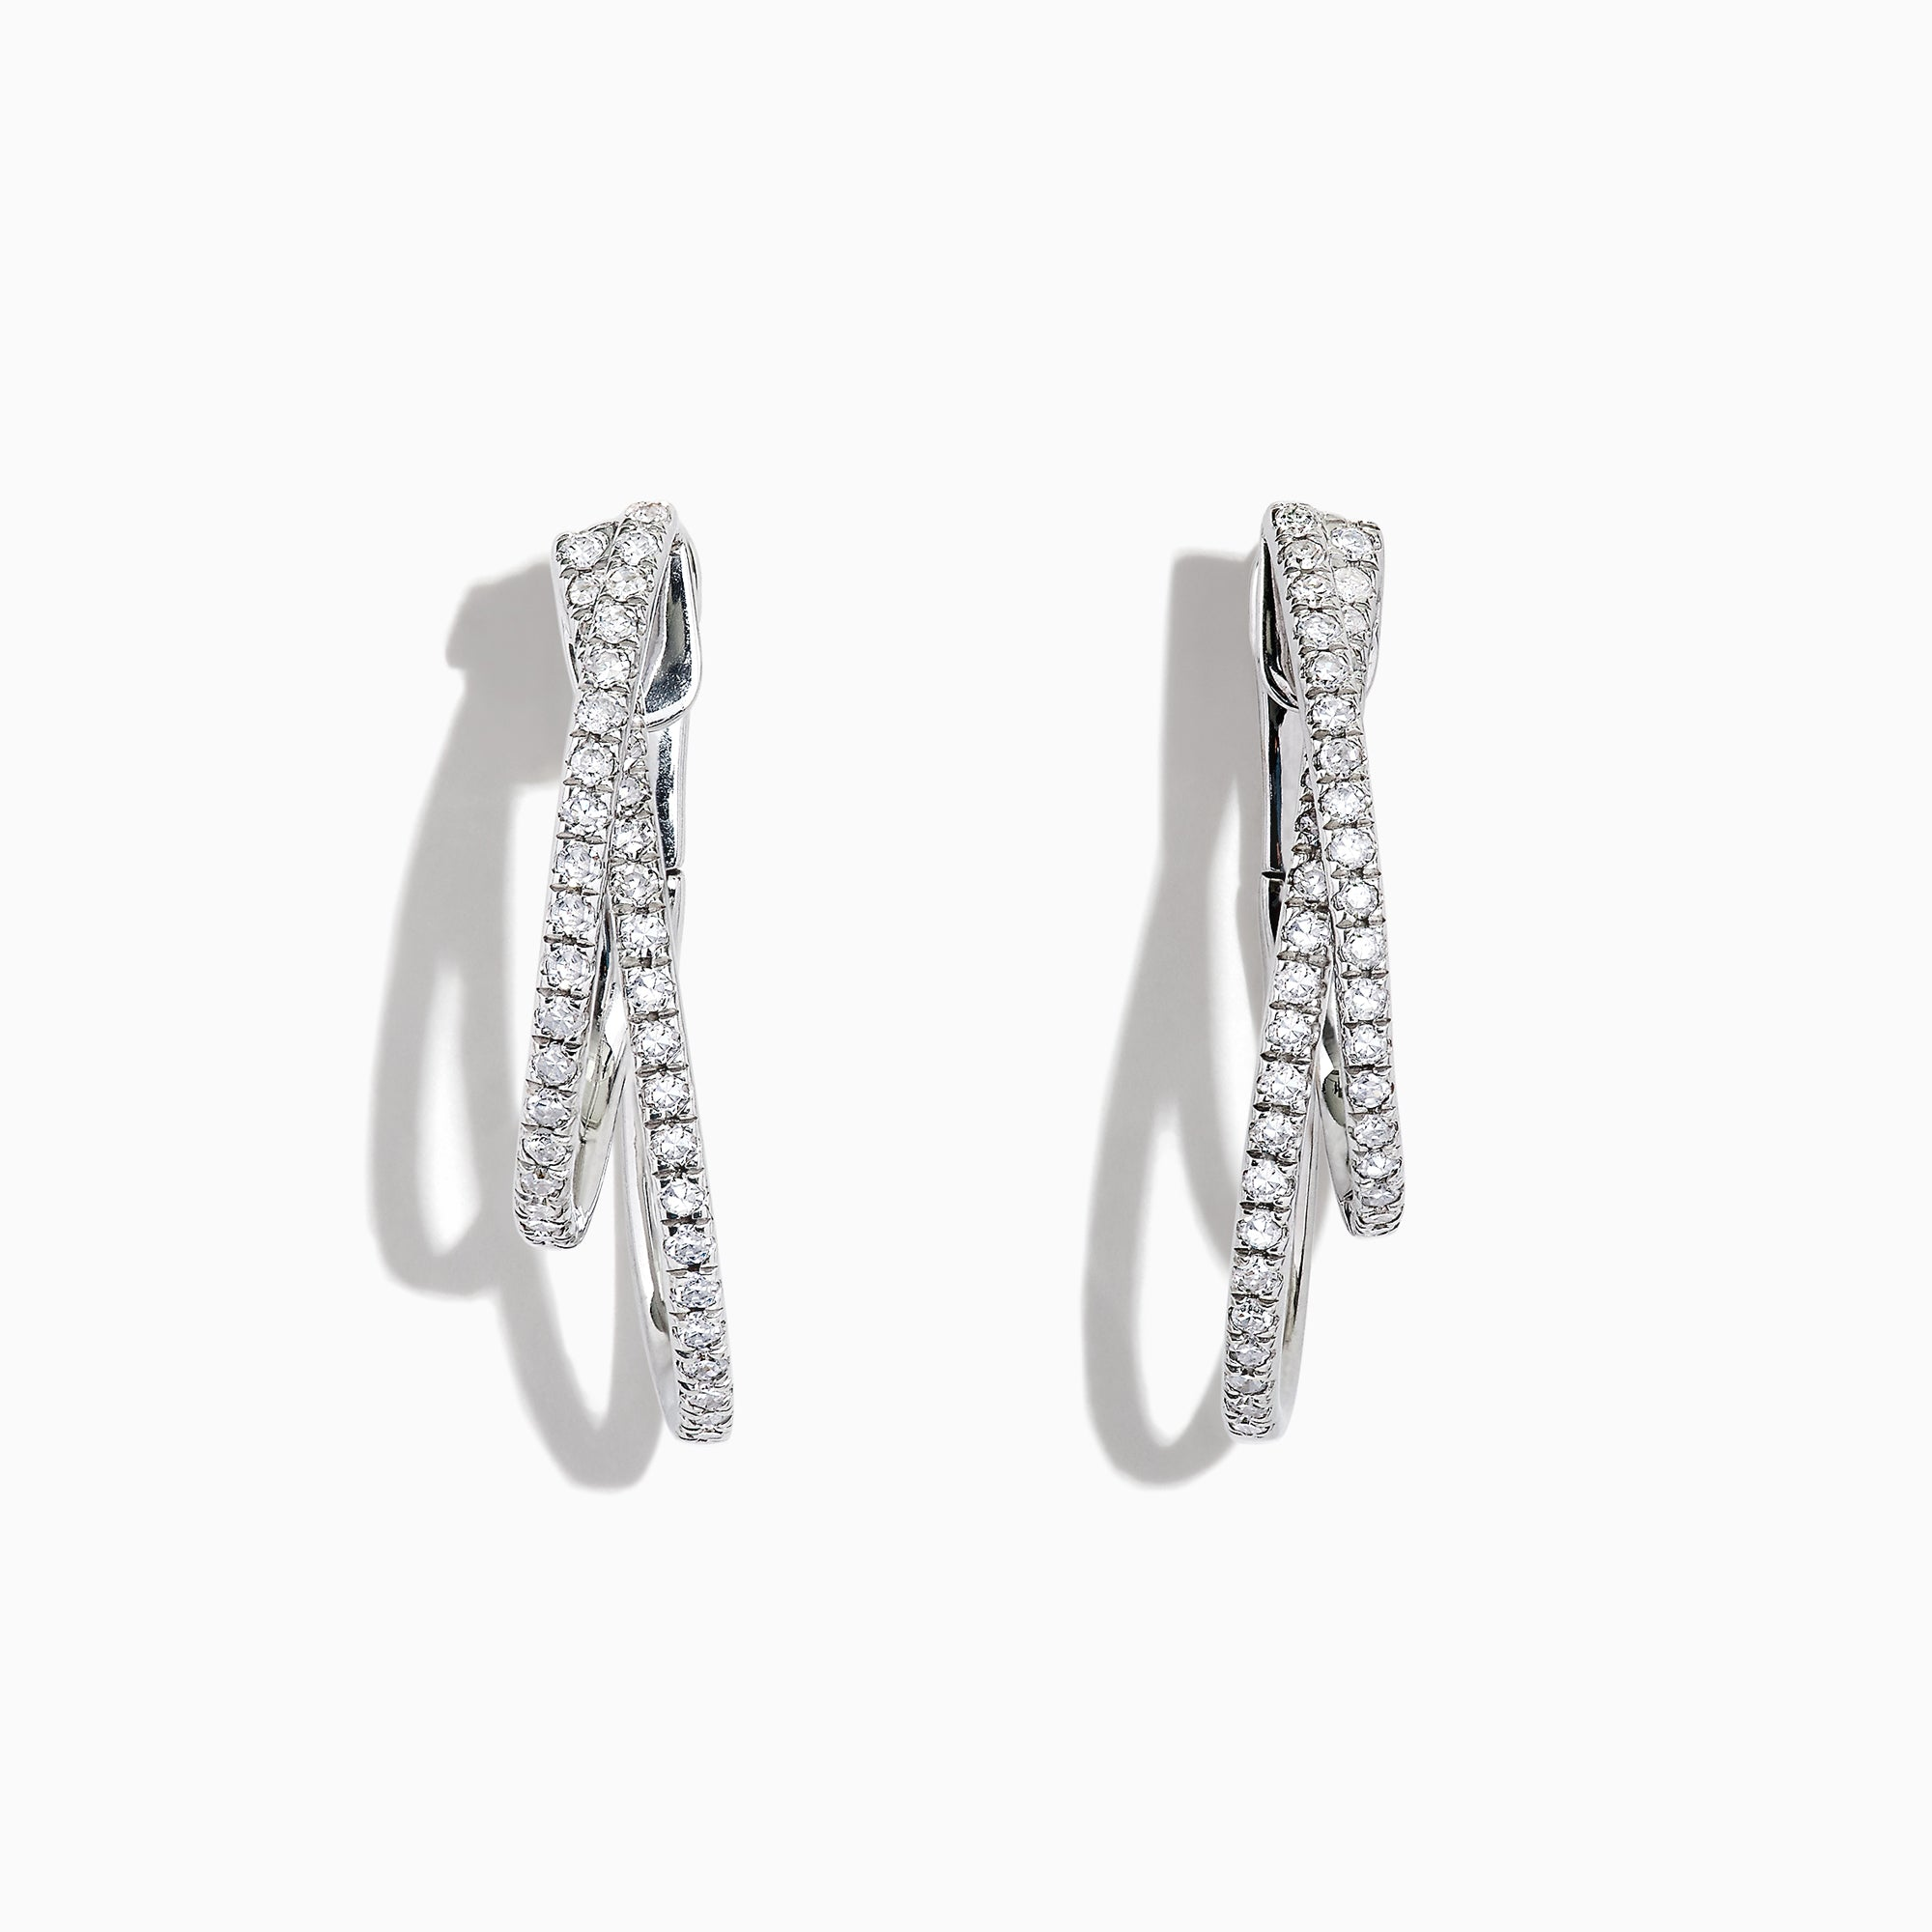 Effy Pave Classica 14K White Gold Diamond Earrings, 0.58 TCW